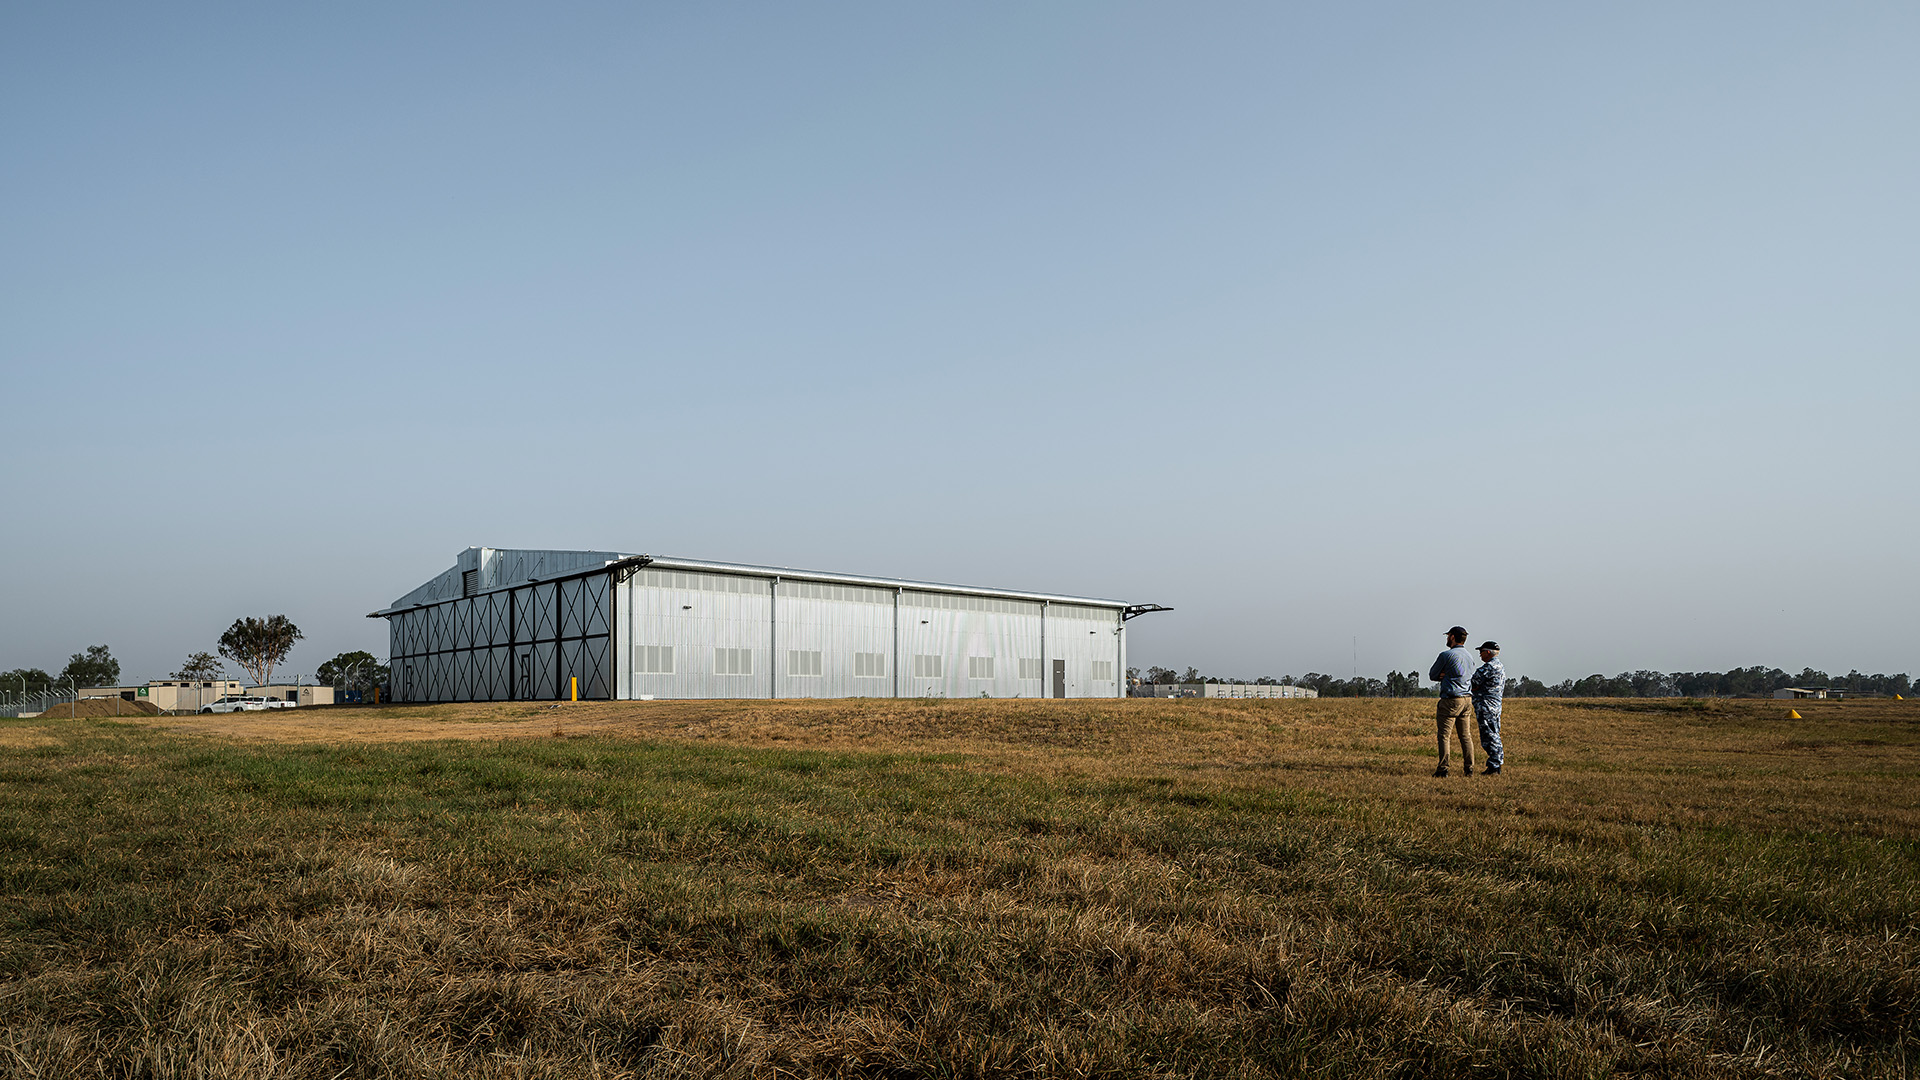 Bellman Hangar and landscape